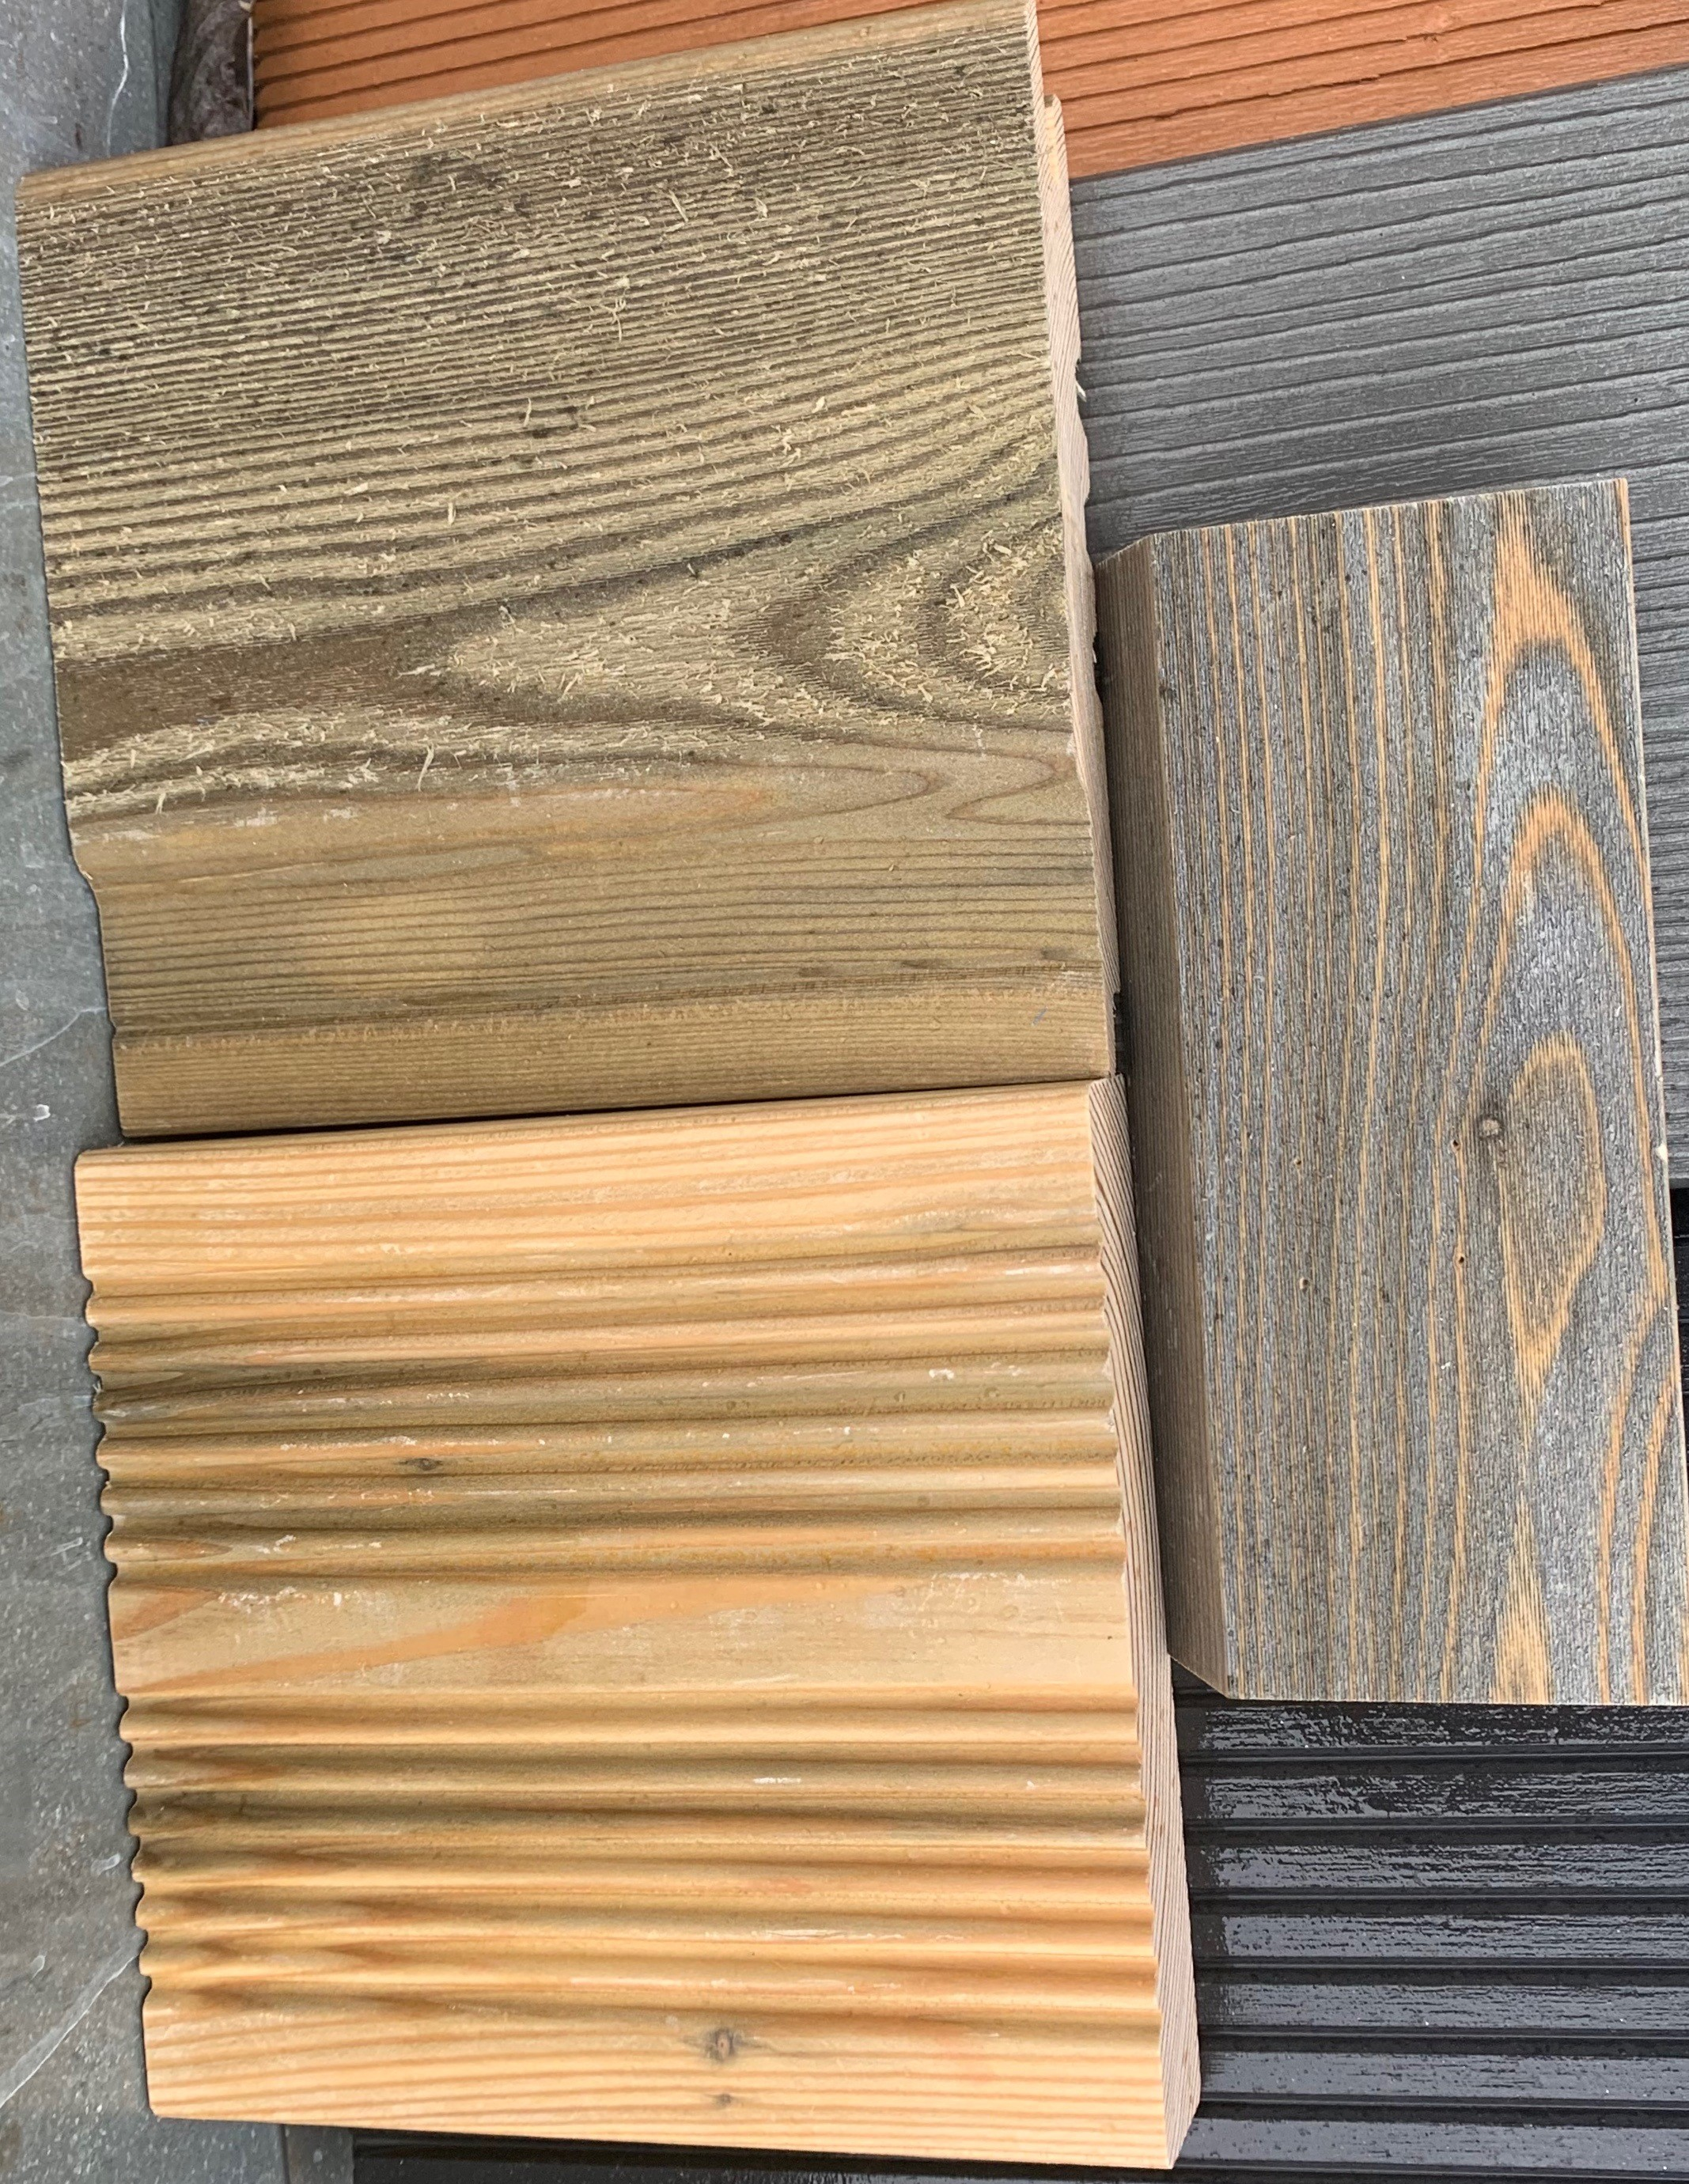 Samples Treated SertiWOOD Aged Look New Unweathered Day 1